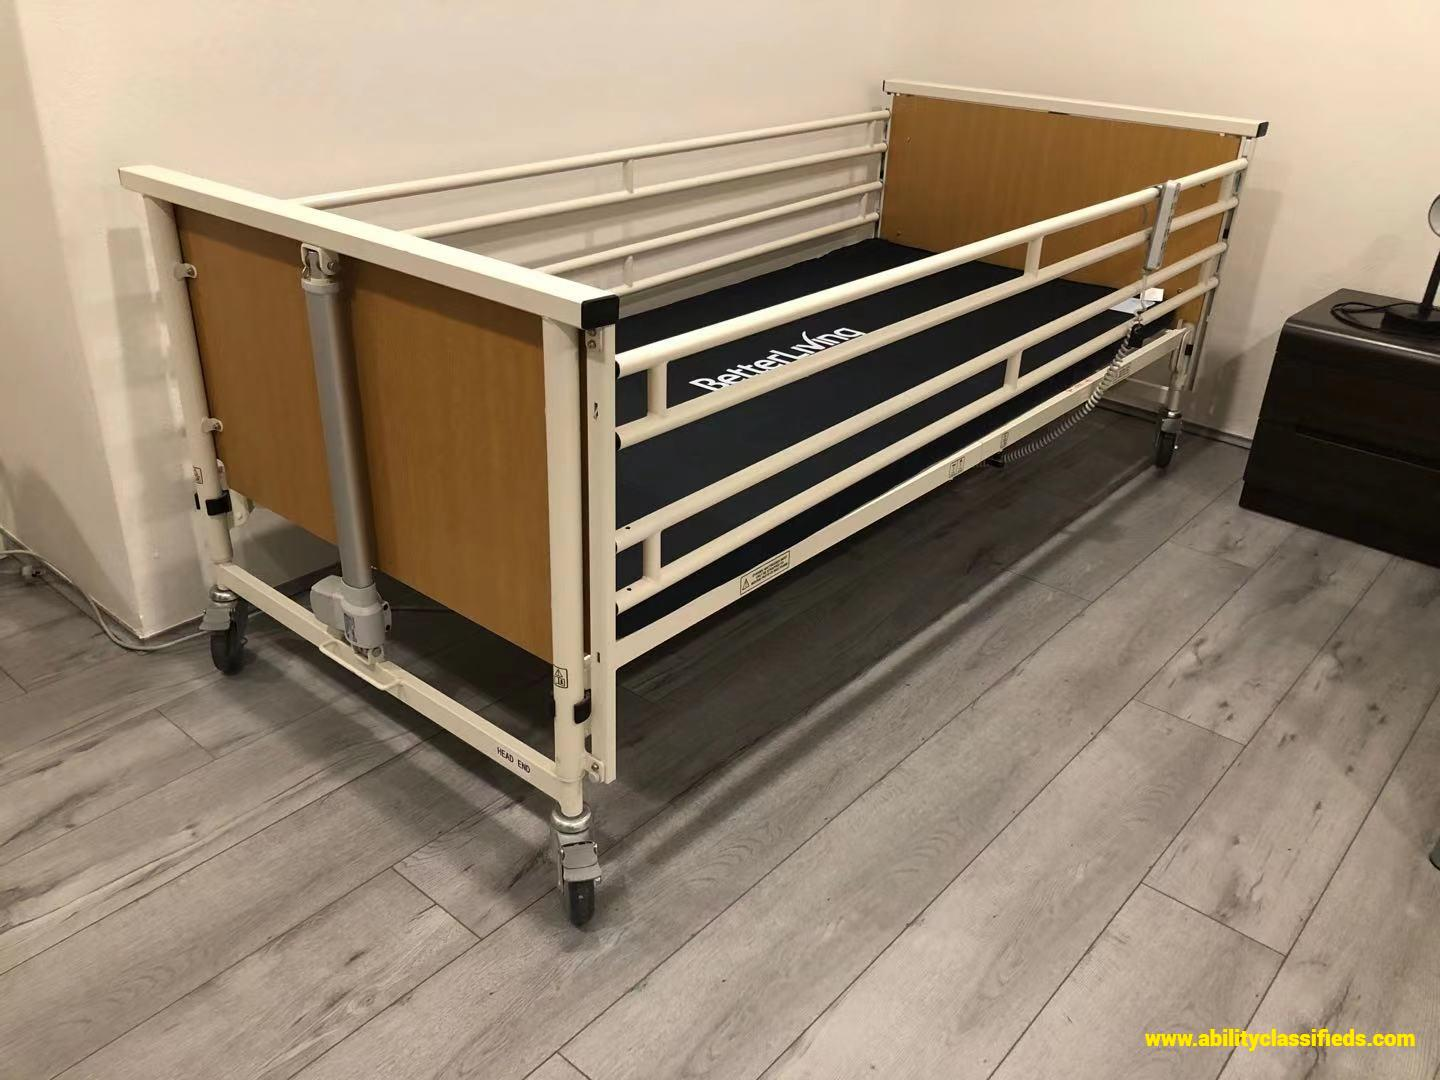 Electric transportable bed with air mattress